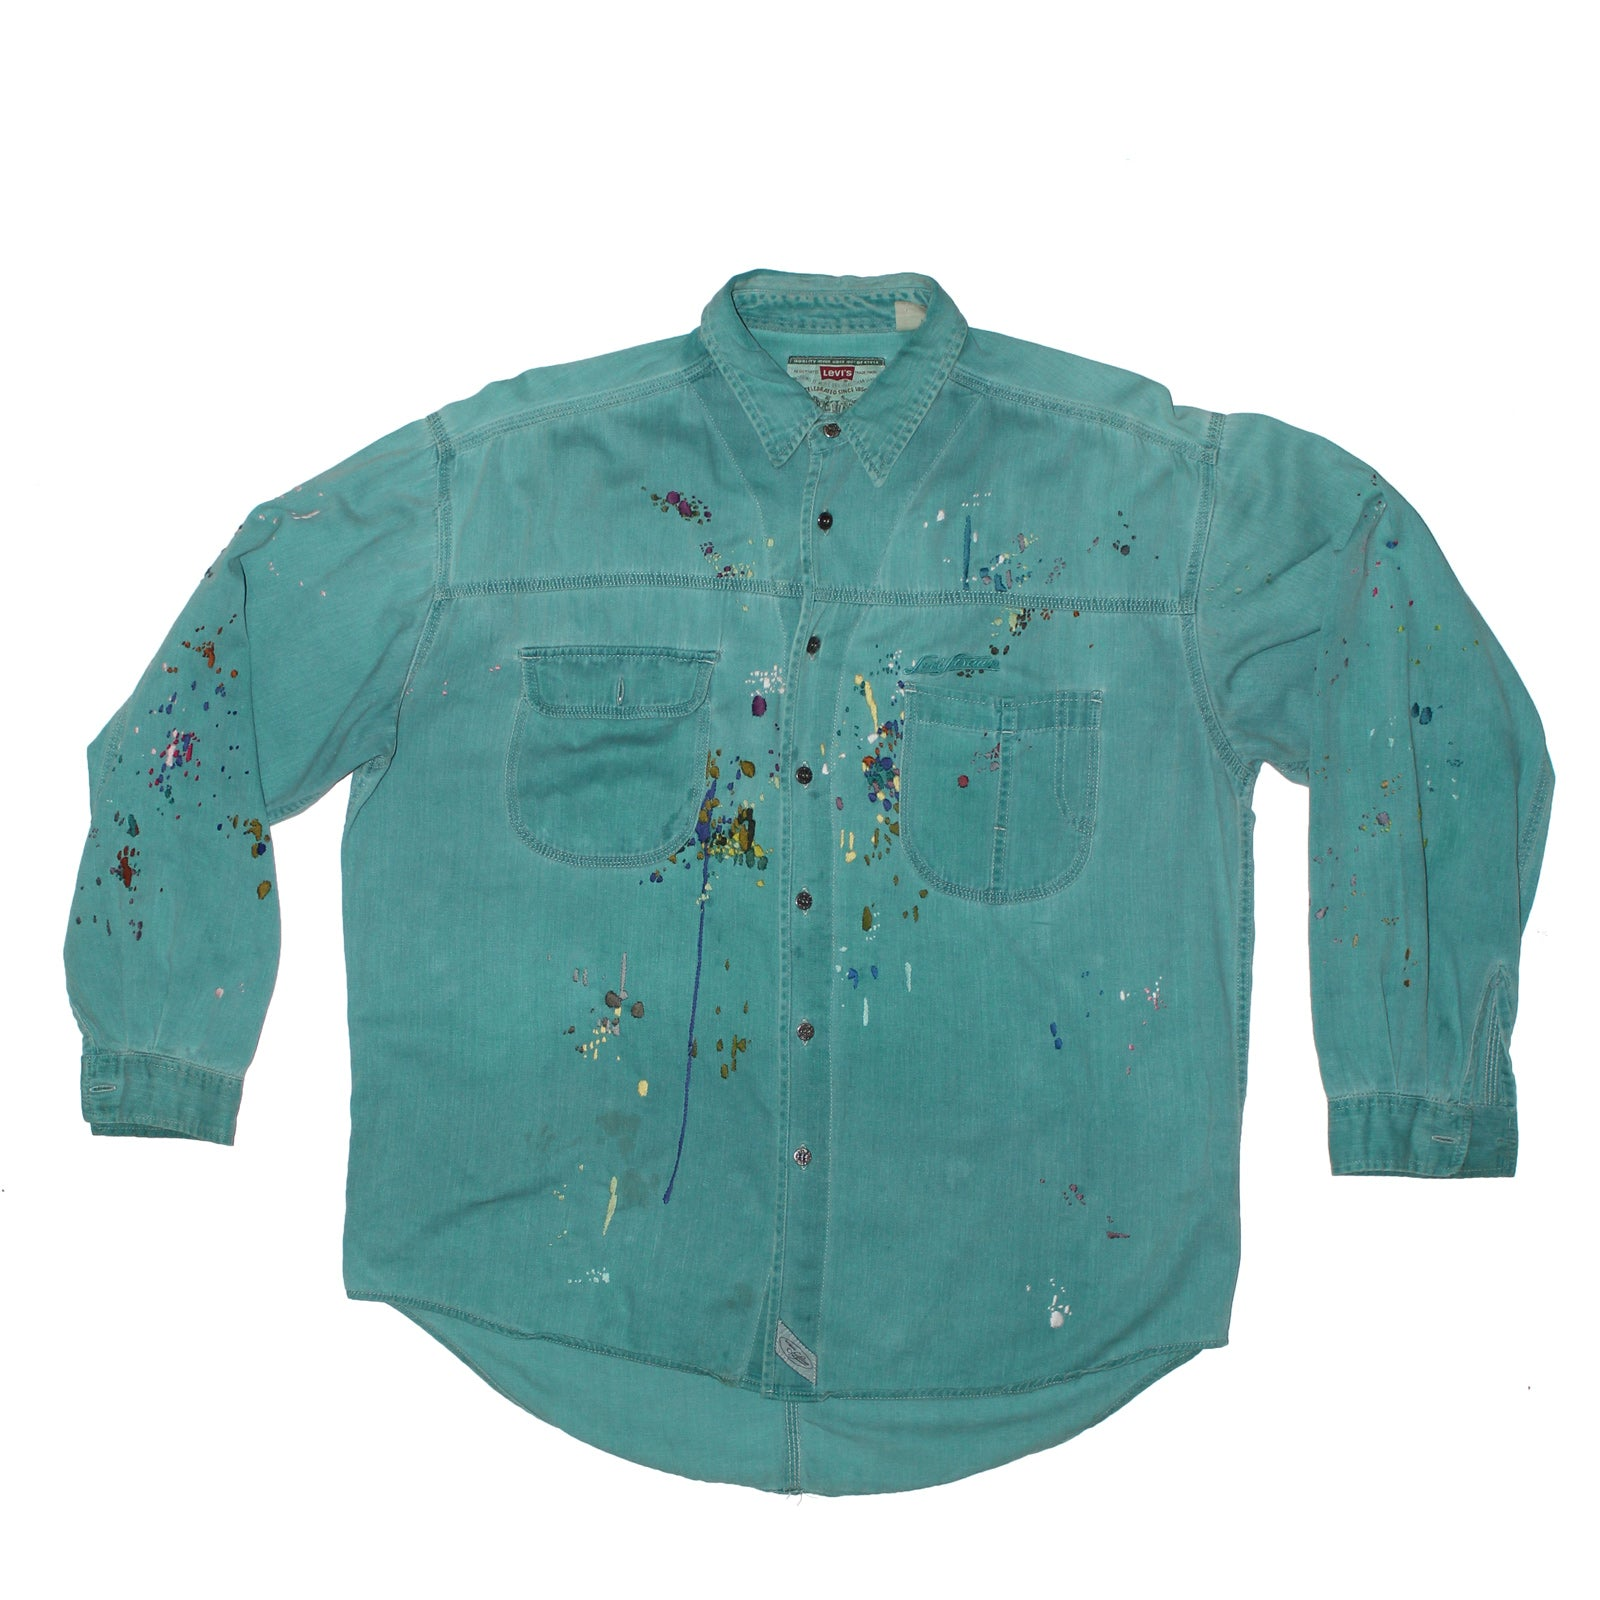 "BANDULU ""ALL THE SEA VINTAGE LEVI'S SHIRT"